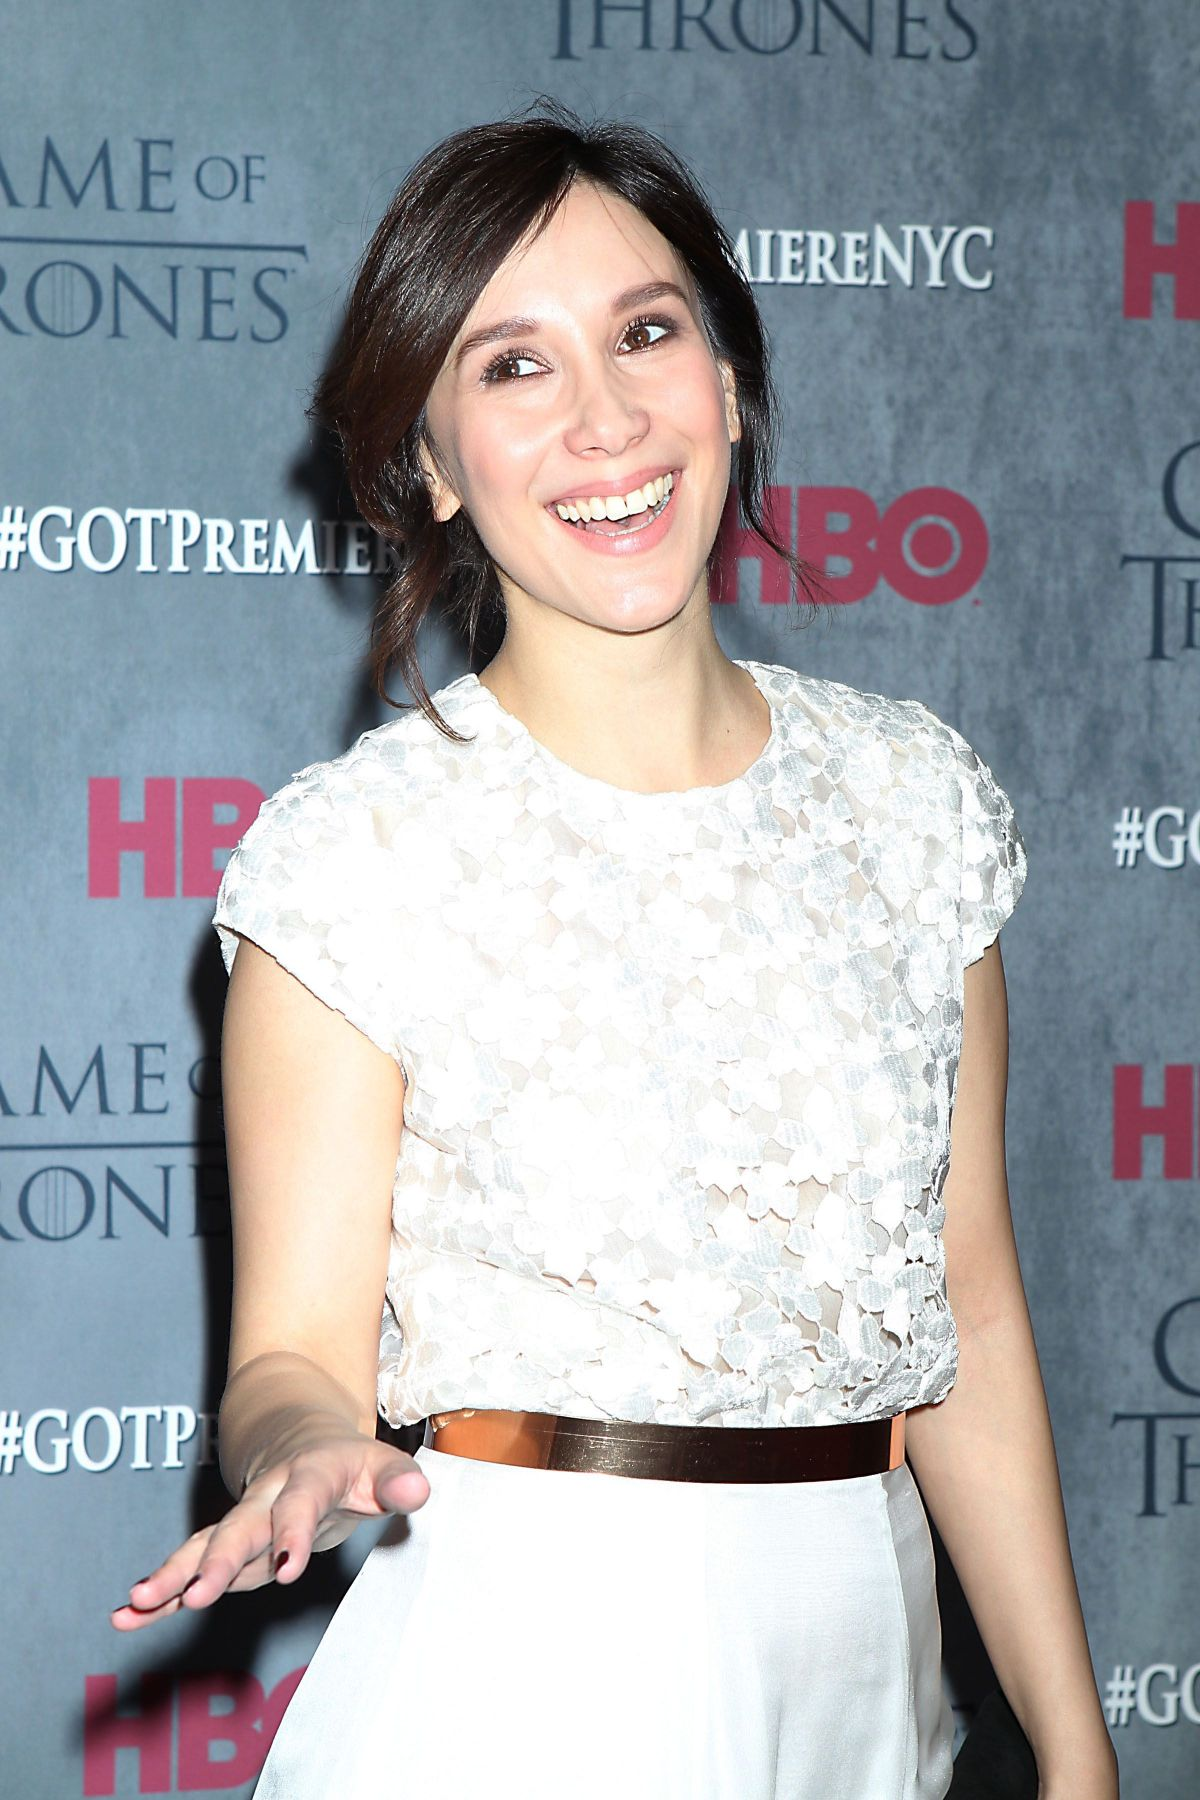 SIBEL KEKILLI at Game of Thrones Fourth Season Premiere in New York